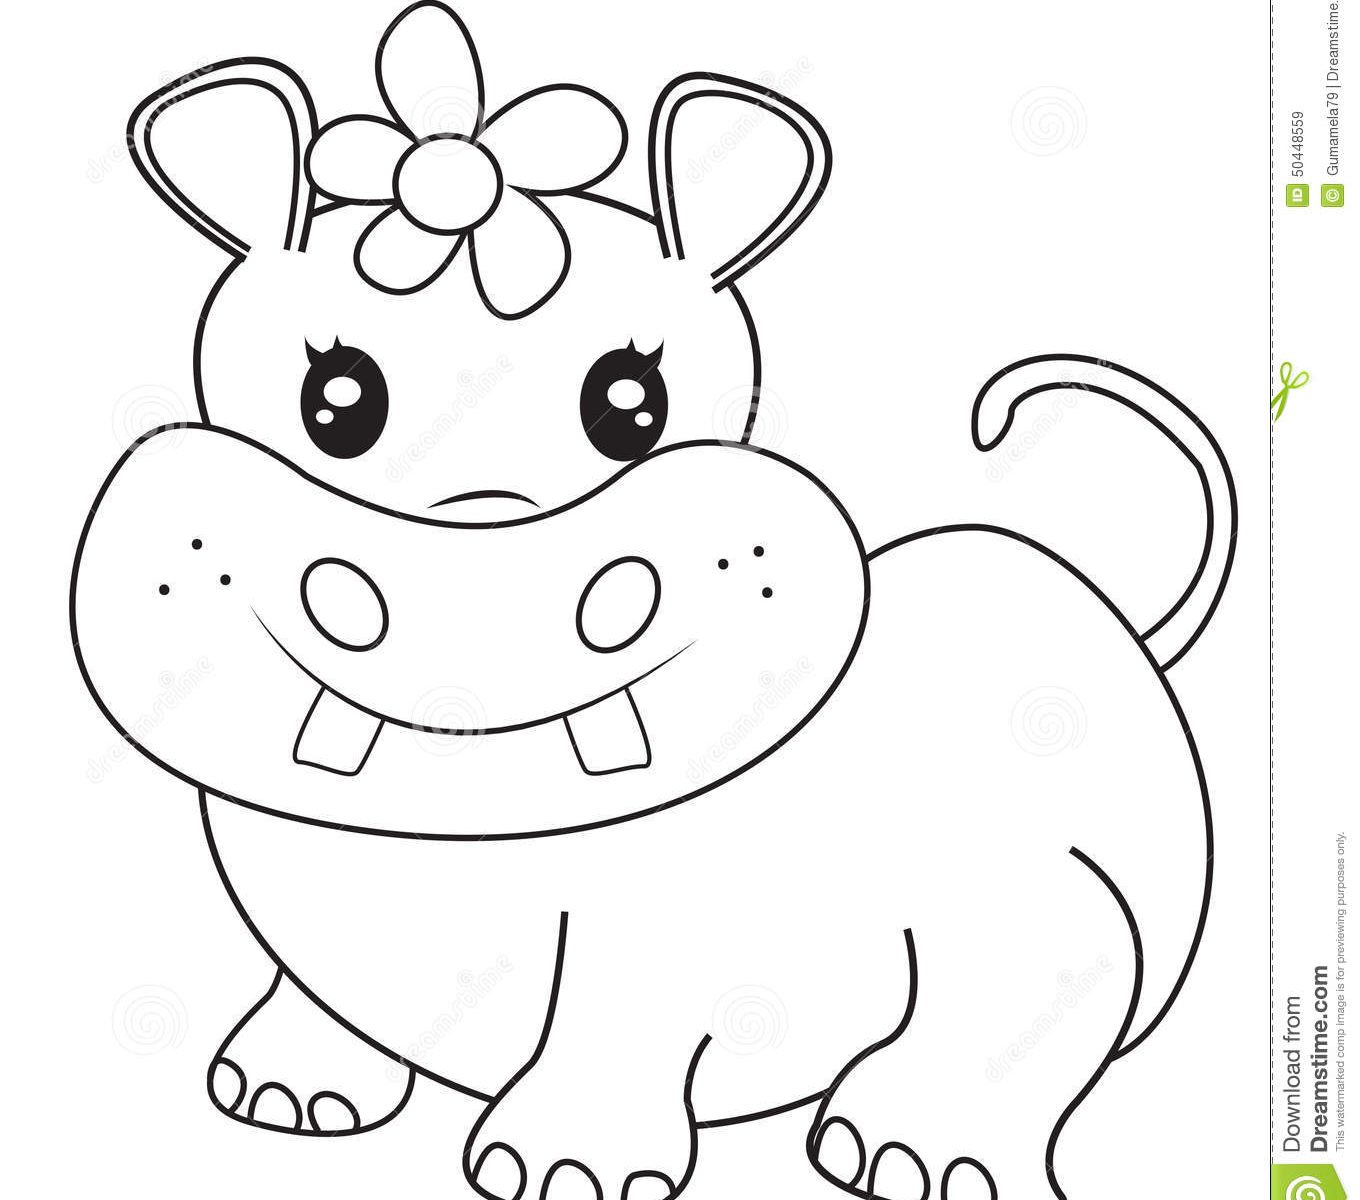 Hippo Drawing at GetDrawings.com | Free for personal use Hippo ...